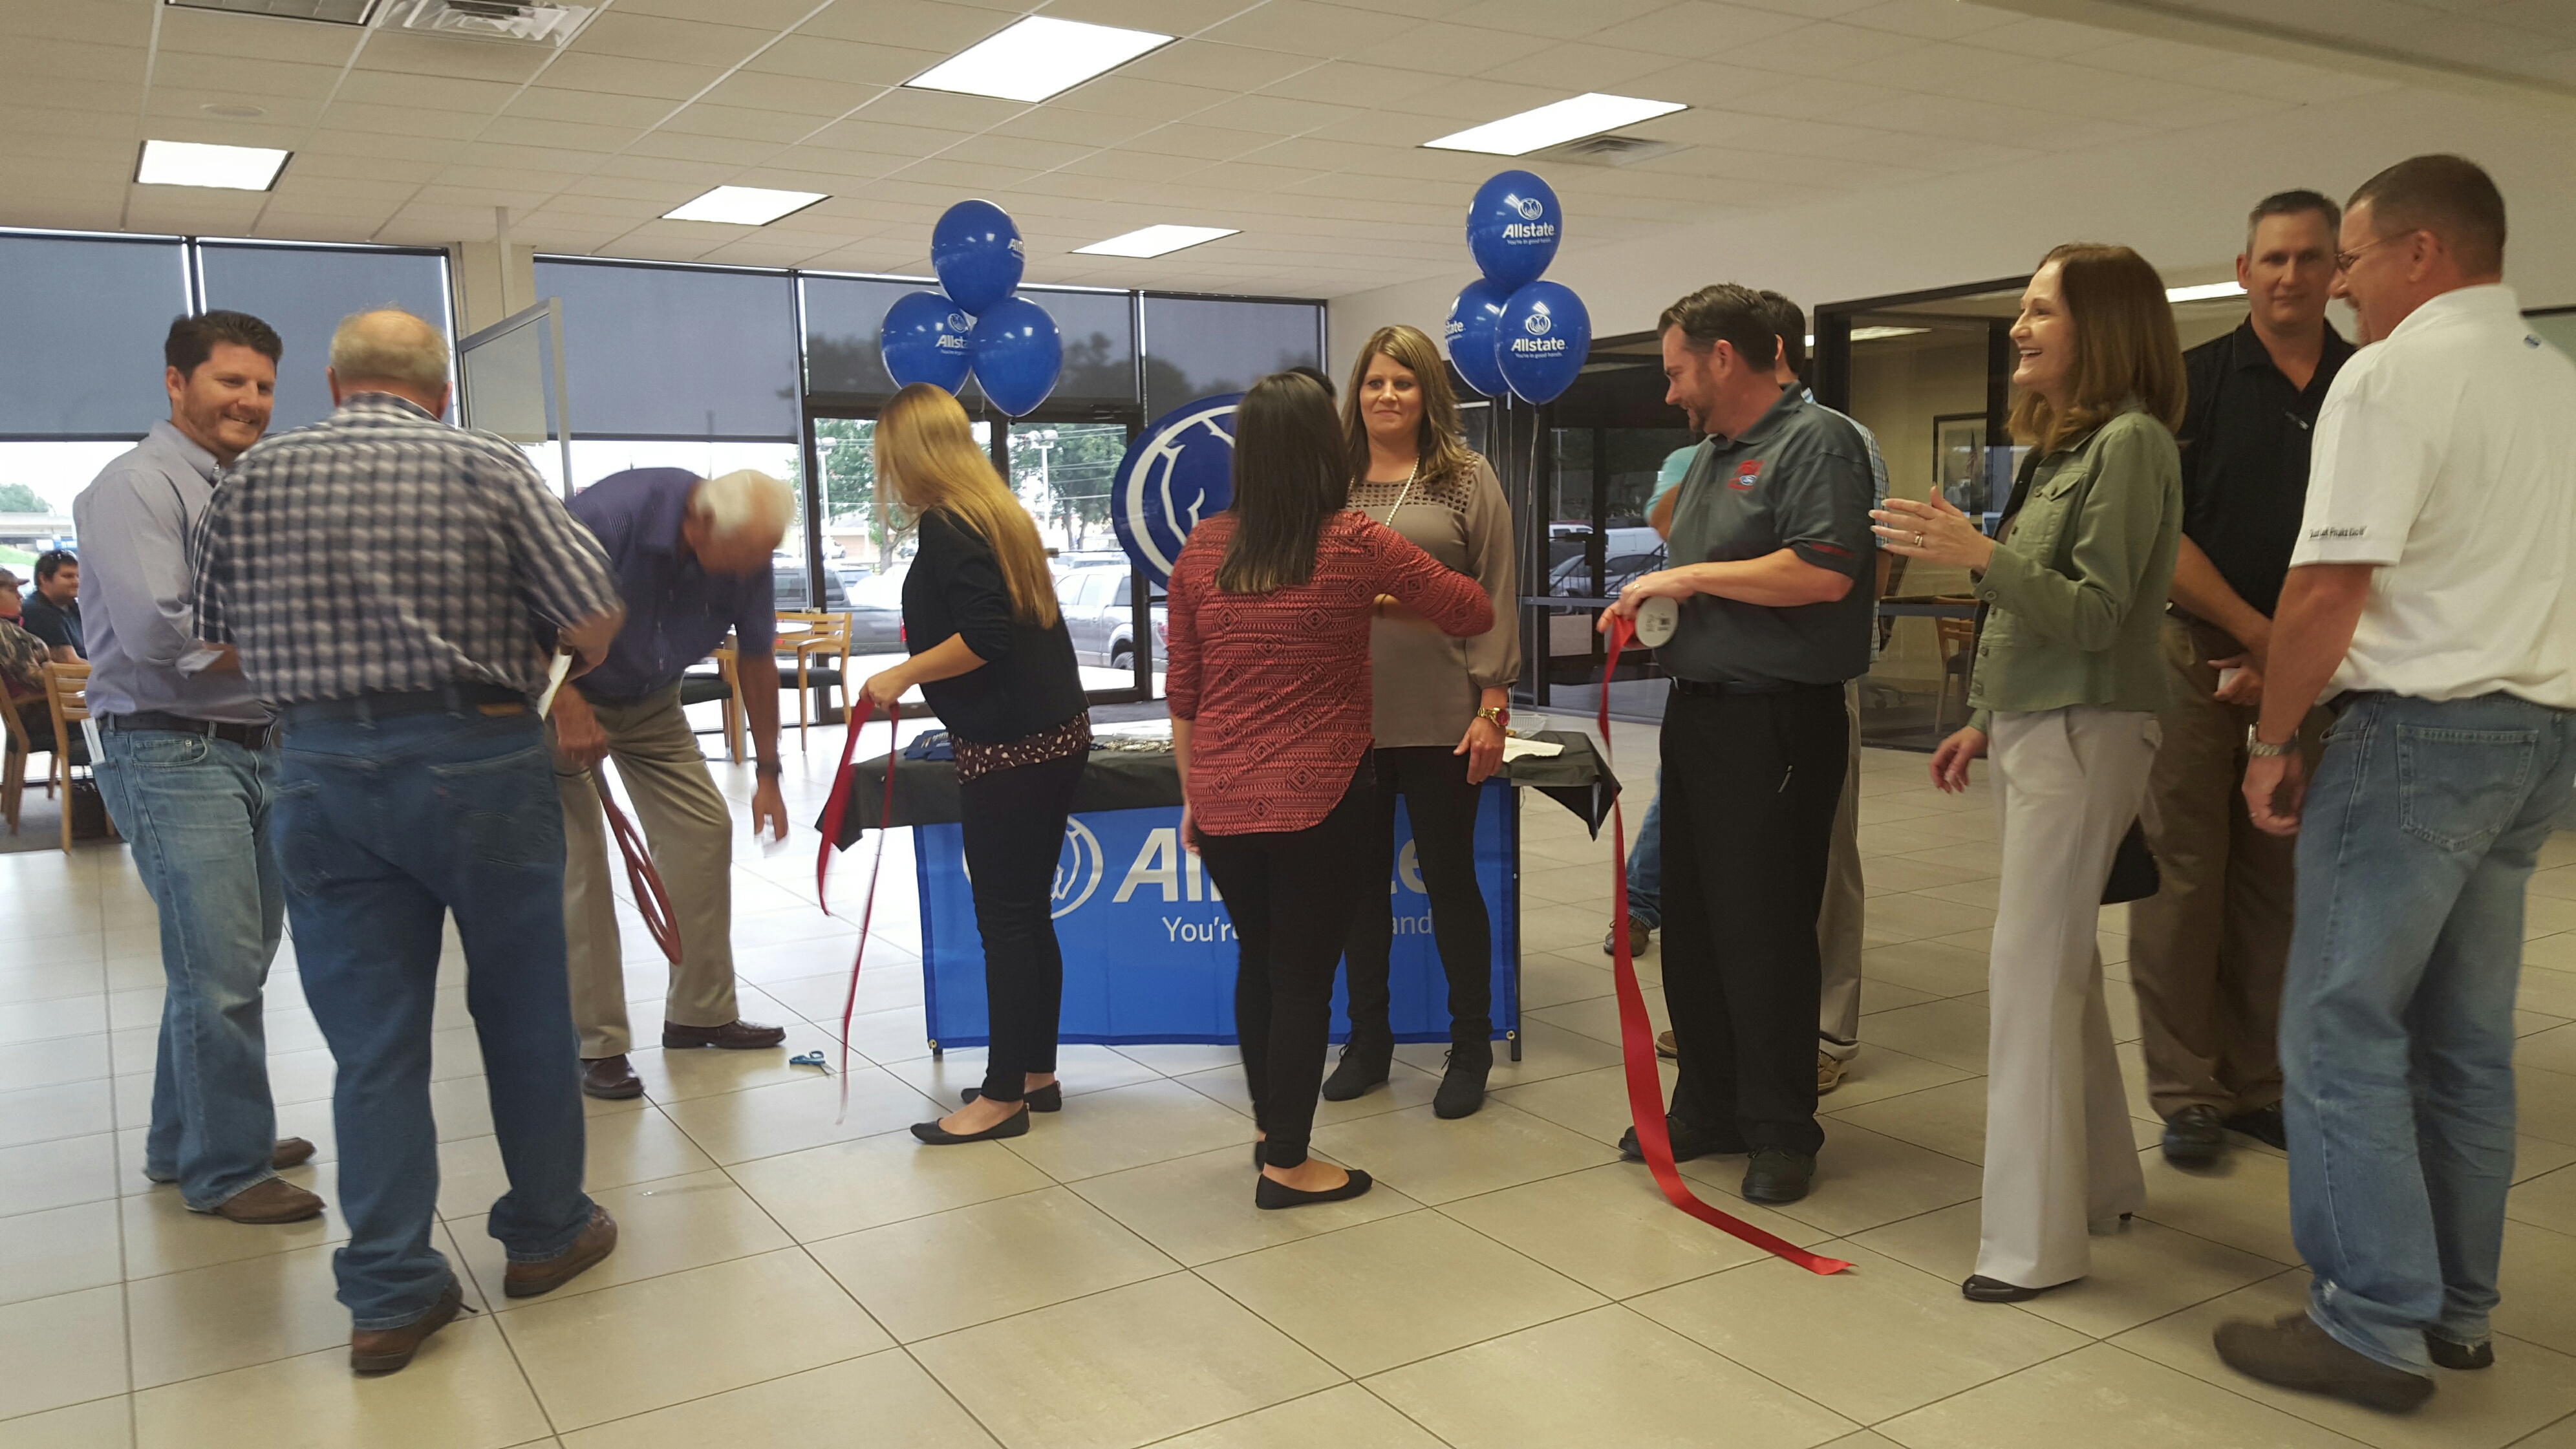 1015_Allstate-Lipscomb Ribbon Cutting 2